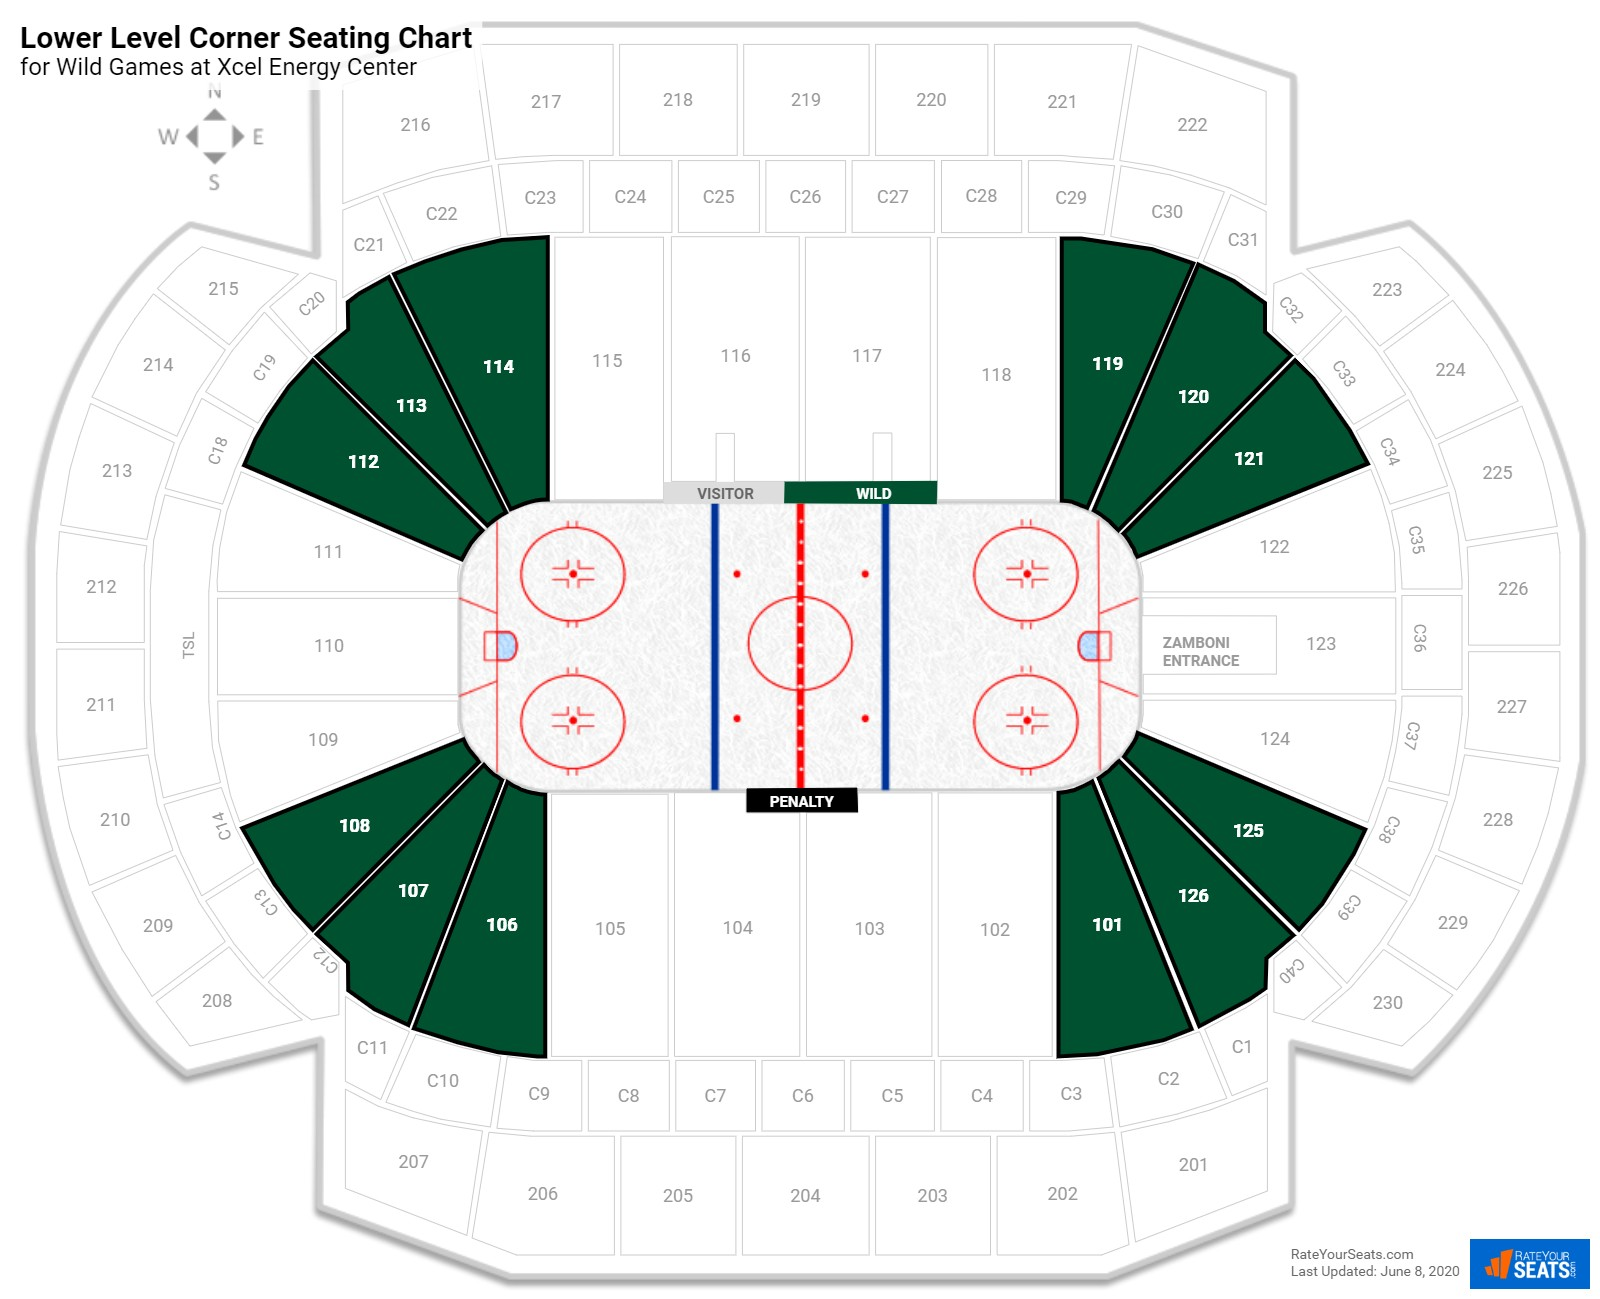 Xcel Energy Center Lower Level Corner seating chart